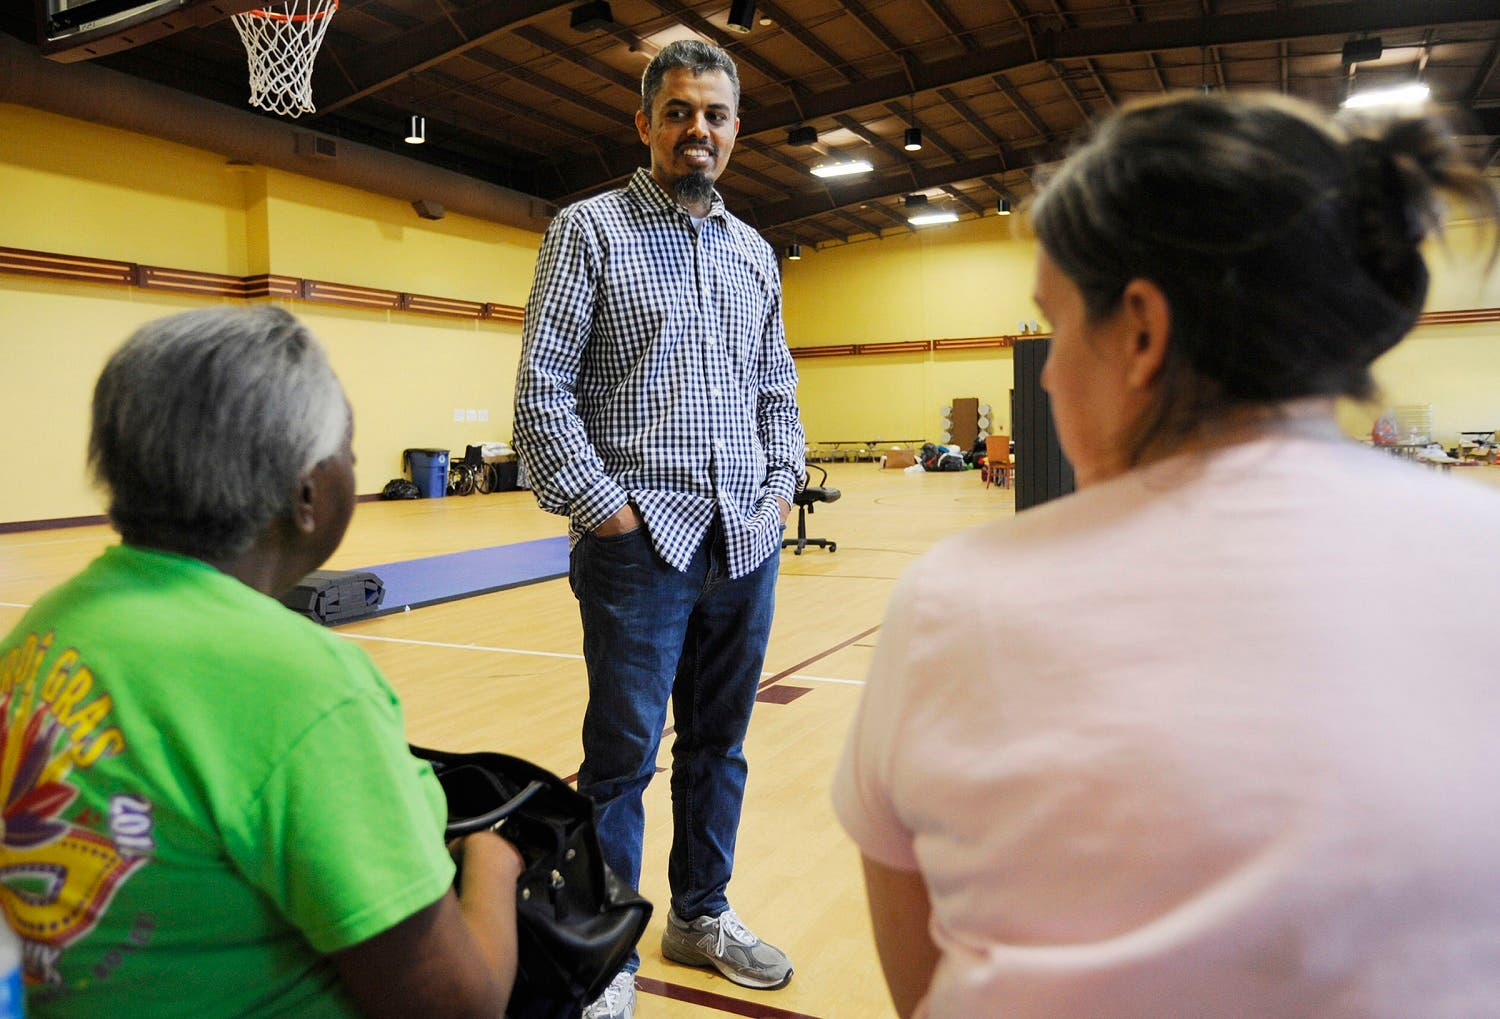 Ayman Kabire, a volunteer at Champions Mosque with the Islamic Society of Greater Houston, talks to evacuees at a mosque that was being used as a shelter. (AP)